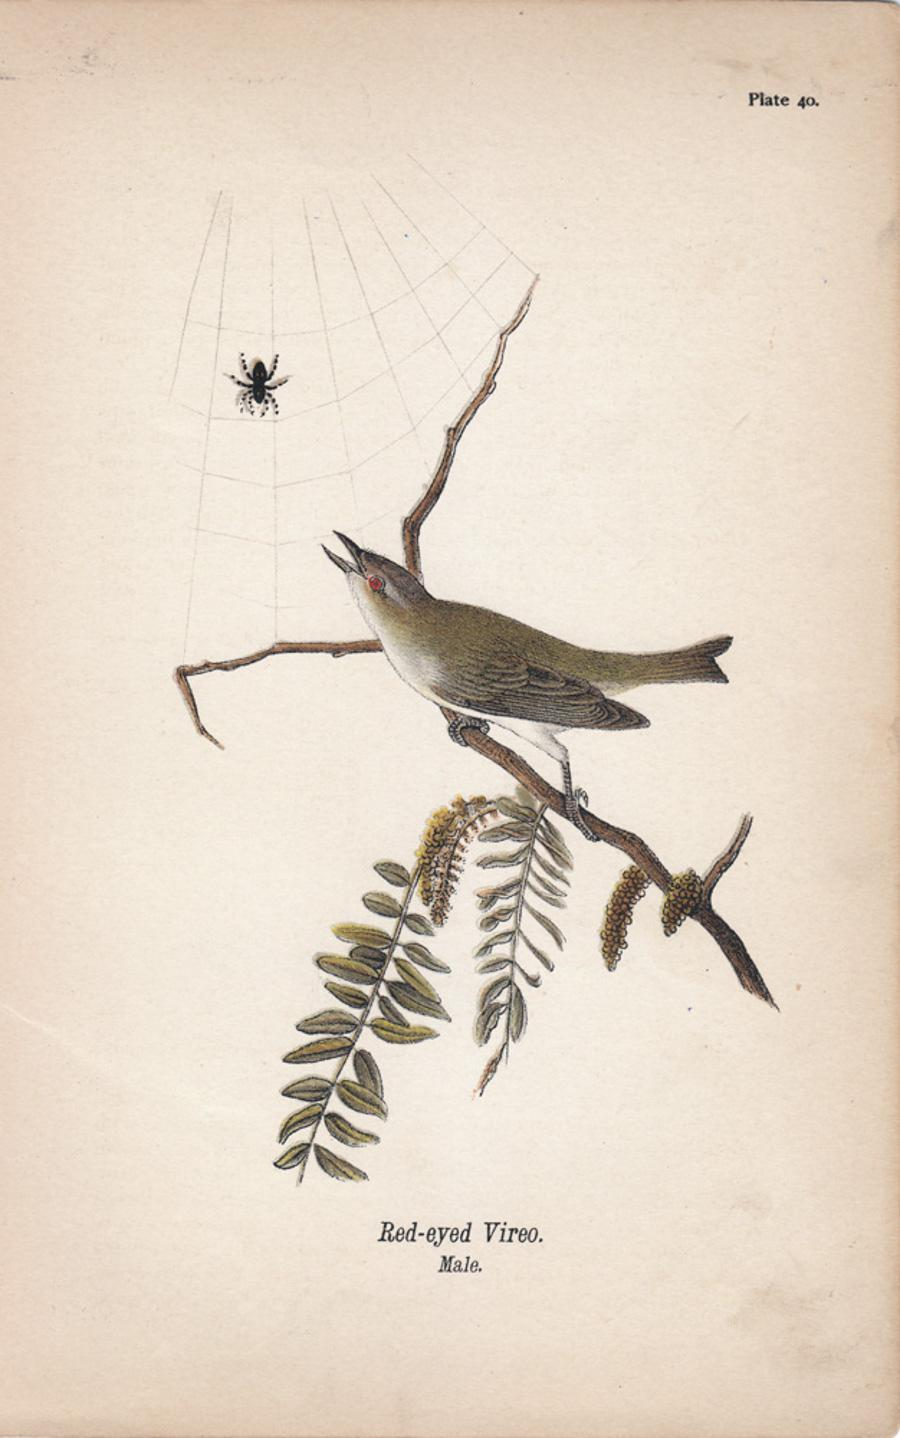 Red-eyed Vireo; Plate 40